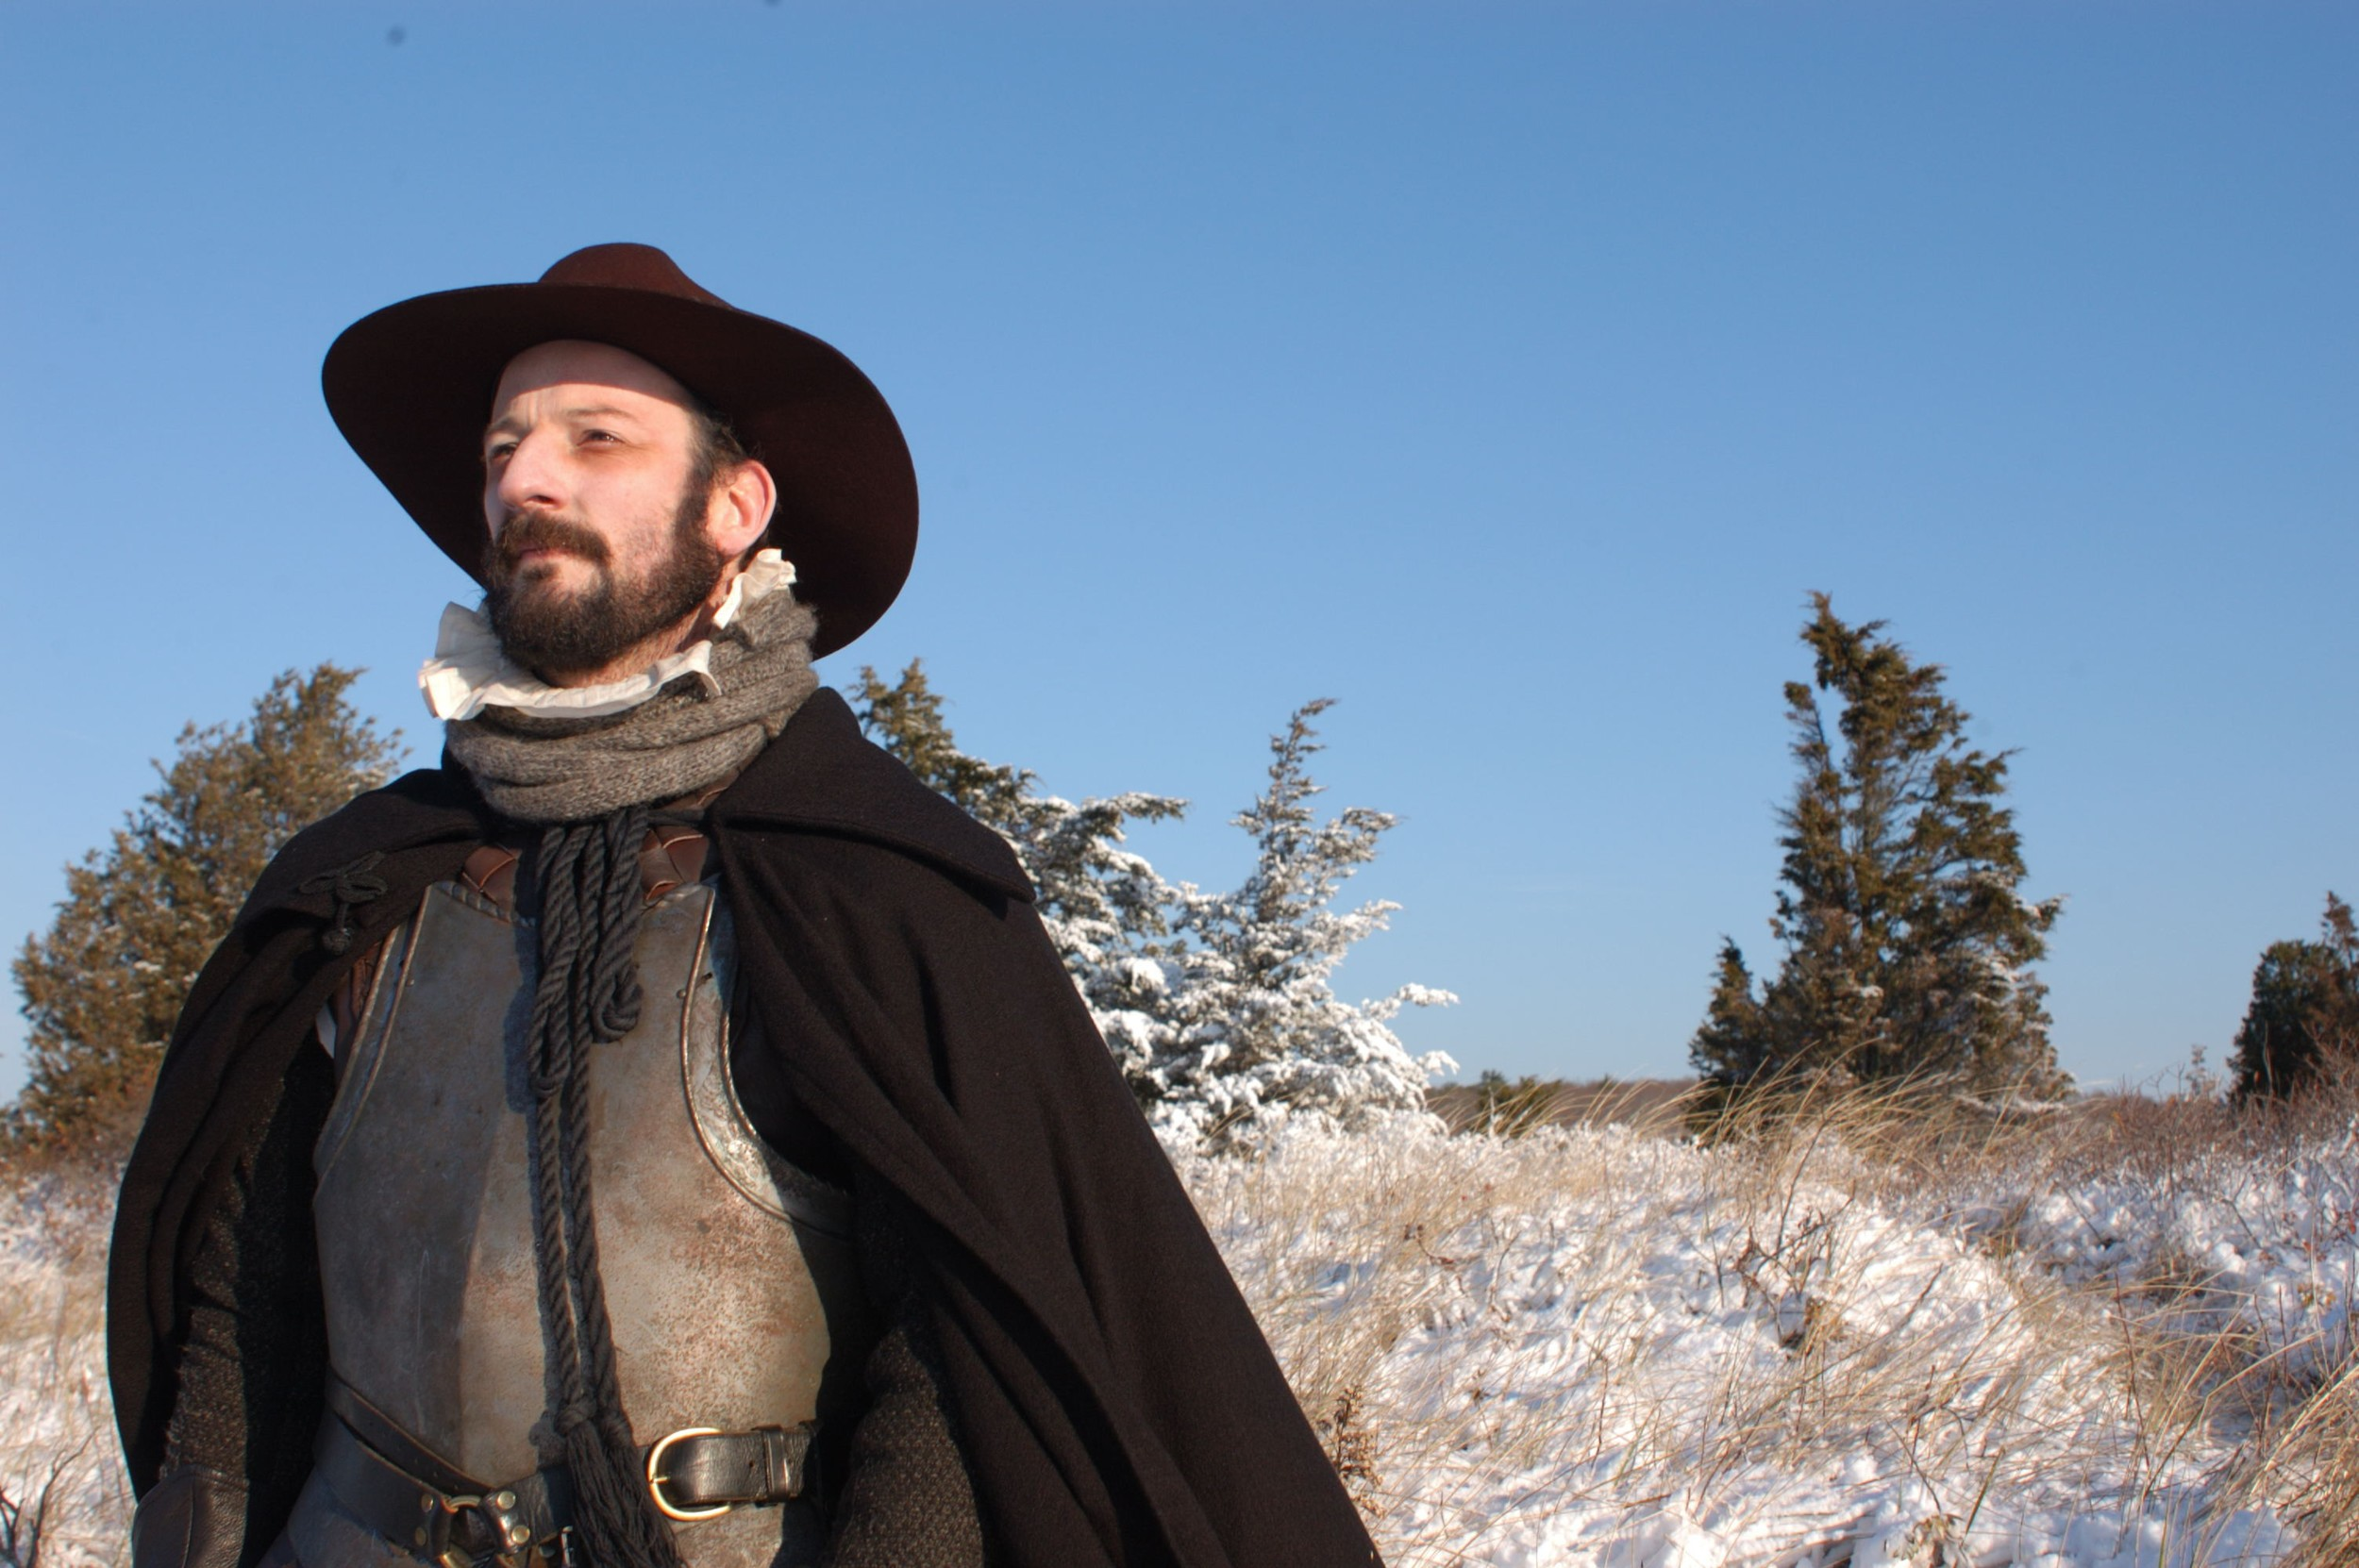 """Christopher Martin exploring on Cape Cod in December 1621, as portrayed on the History Channel's """"Desperate Crossing."""" Promotional image courtesy of Lone Wolf Documentary Group."""